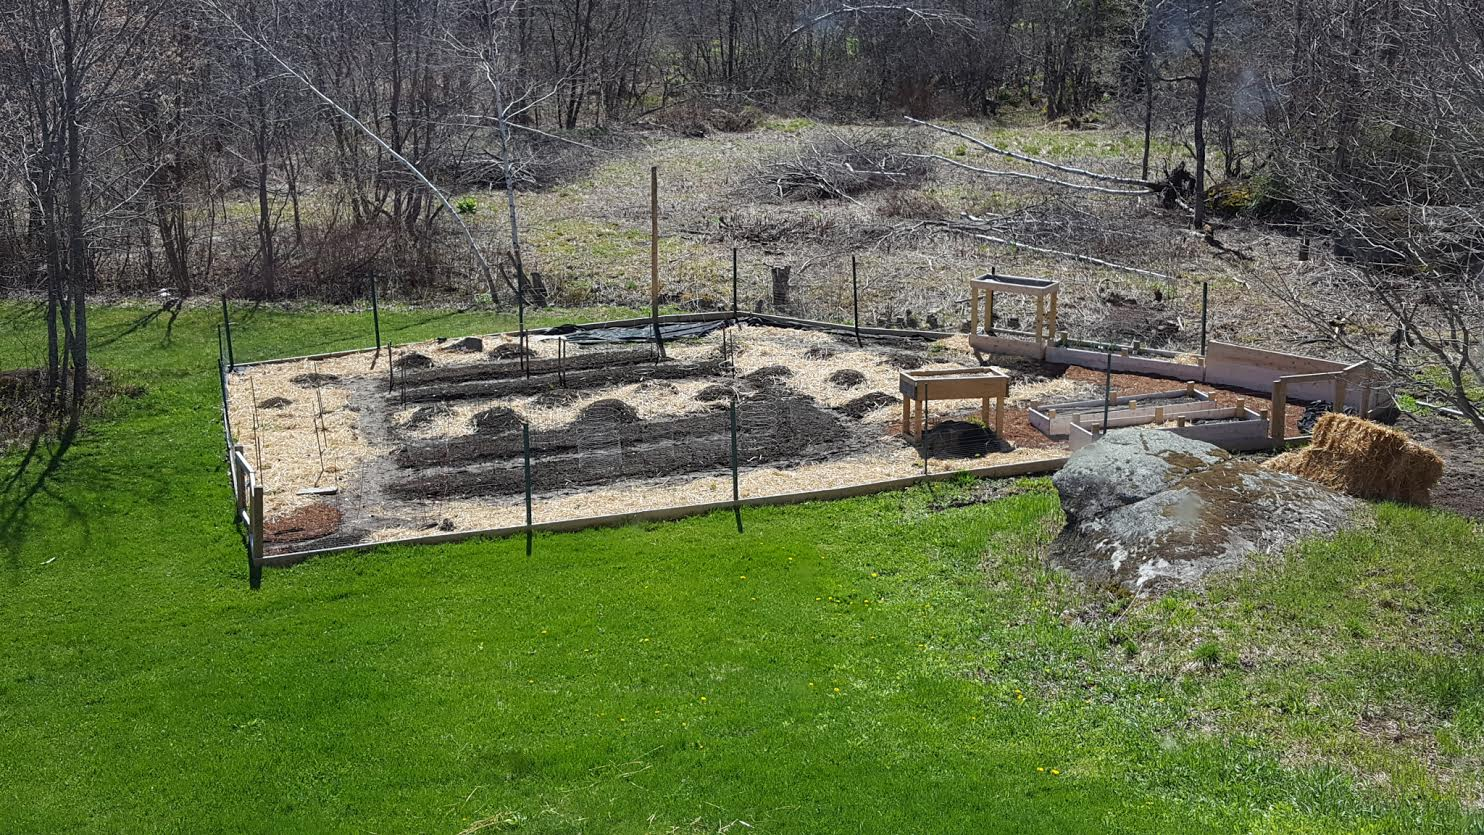 Example of early preparation of the garden, at the start of the growing season 2016